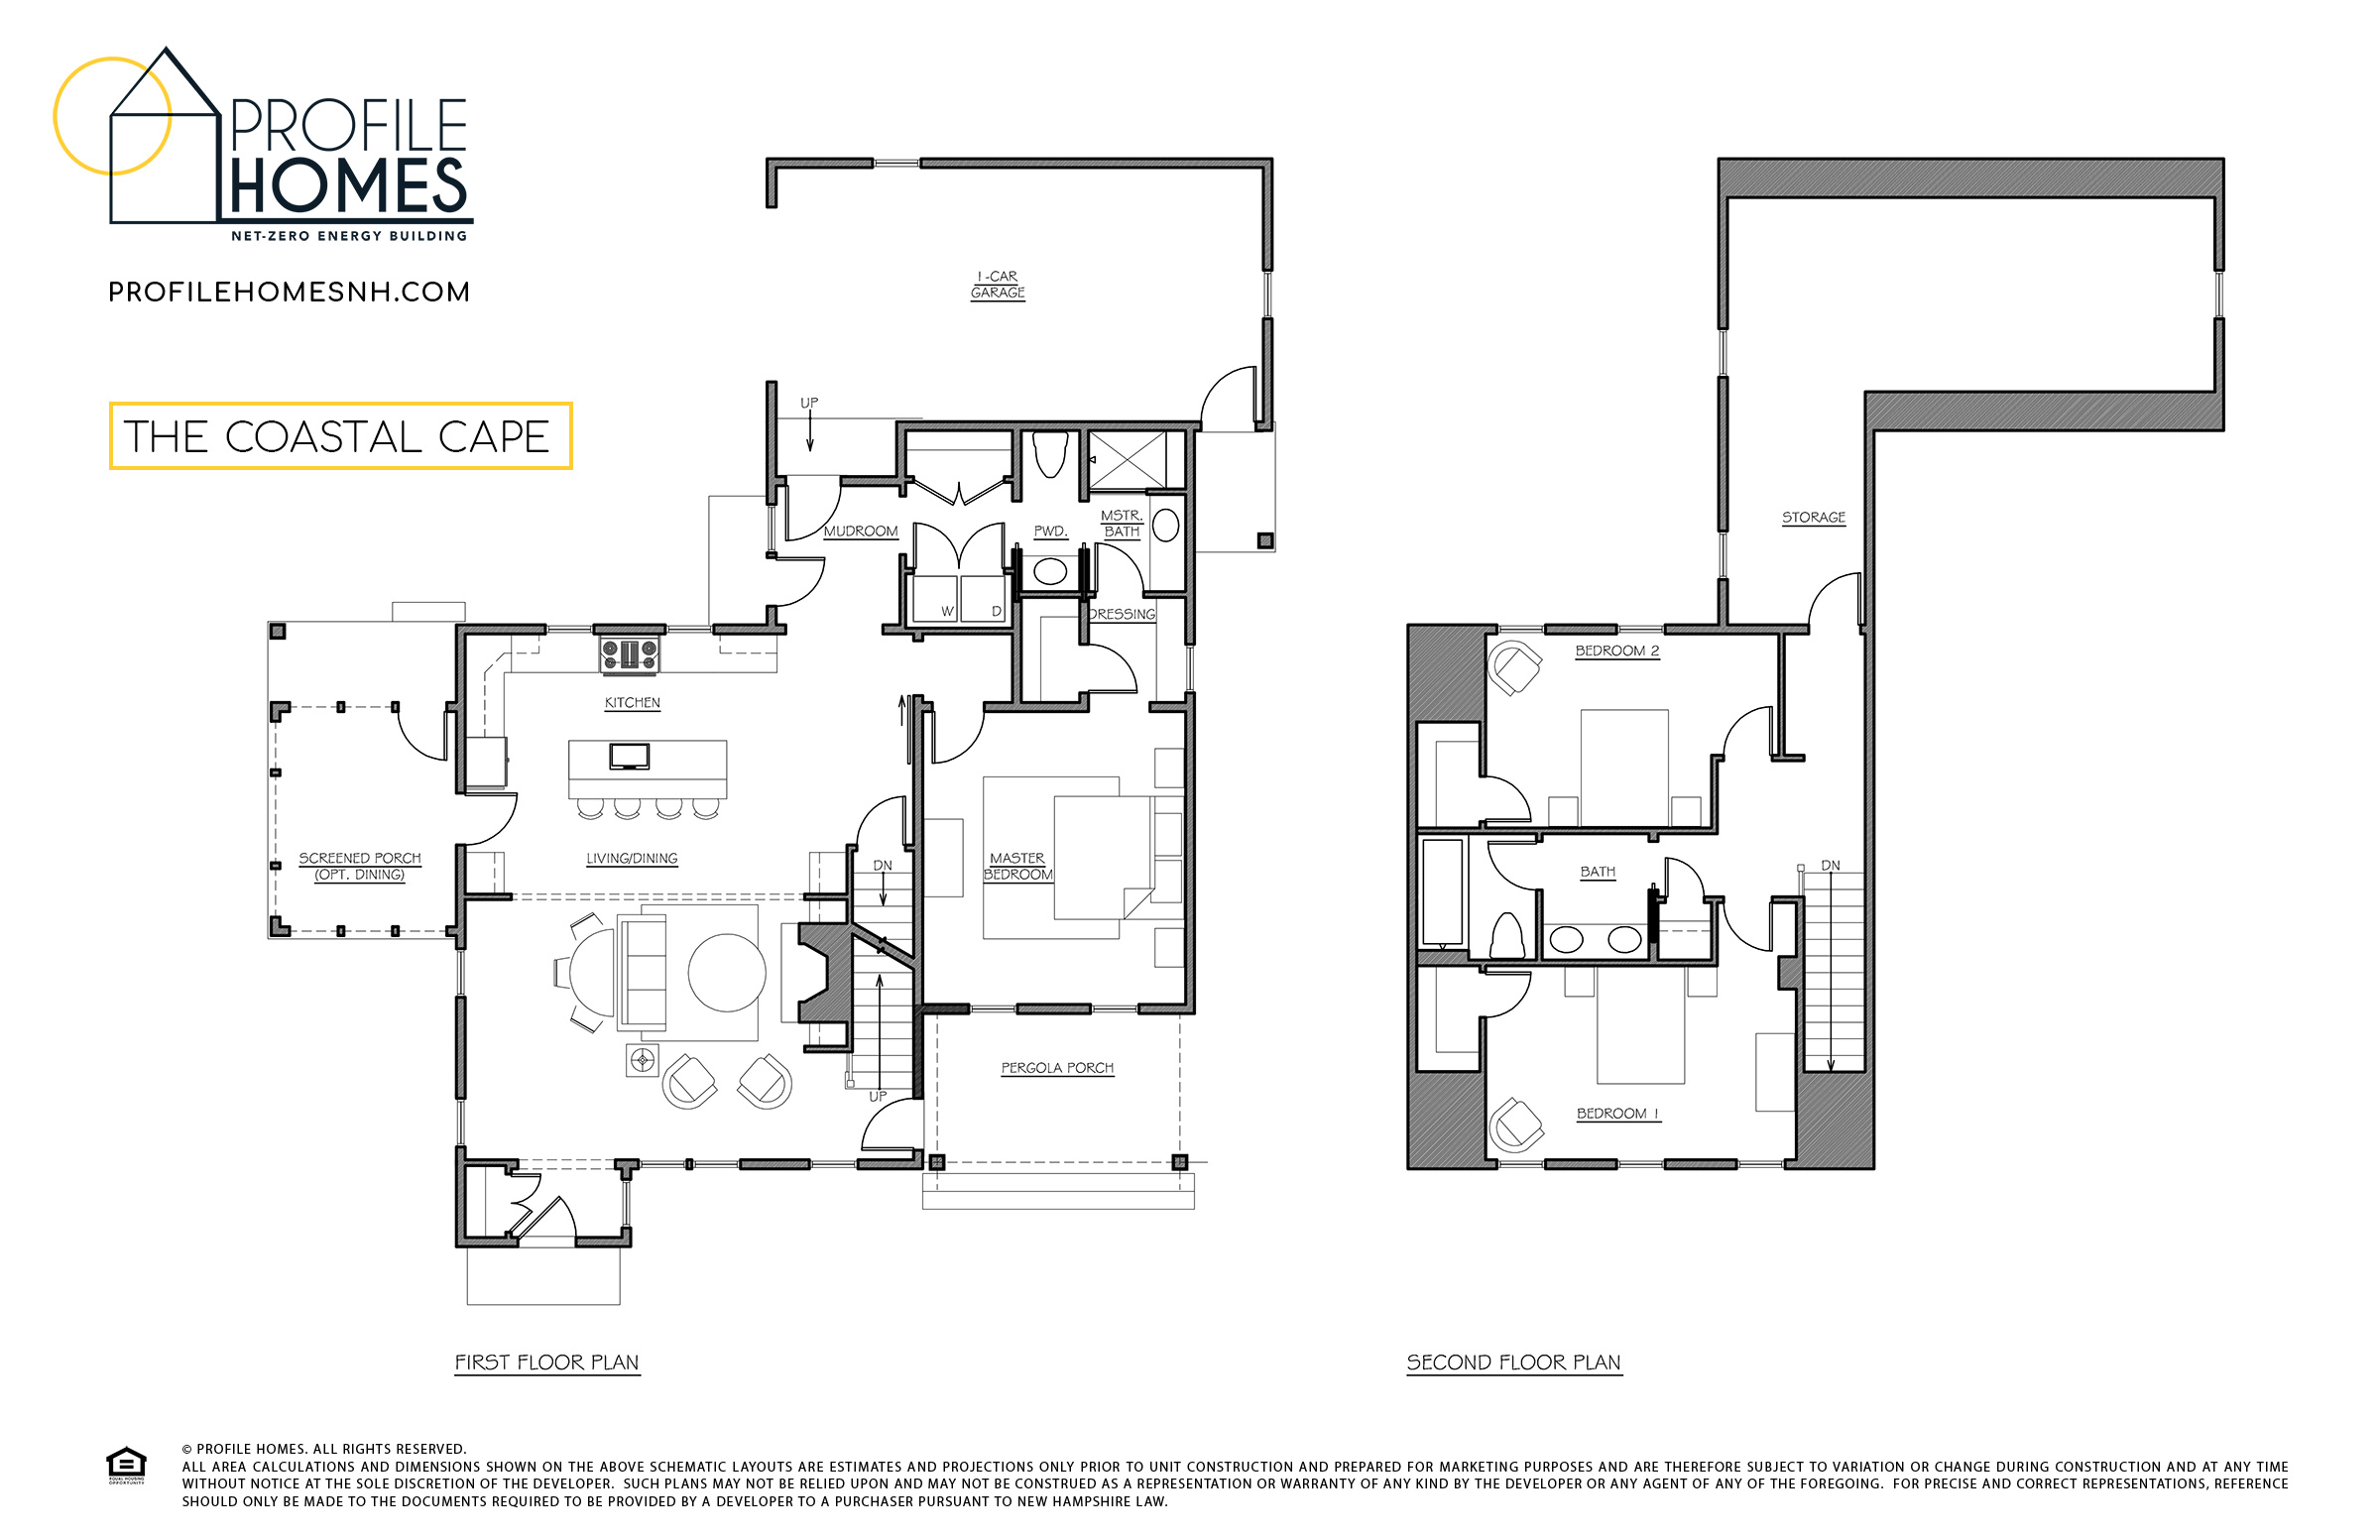 Profile Homes Floorplan Coastal Cape © 2018 Profile Homes